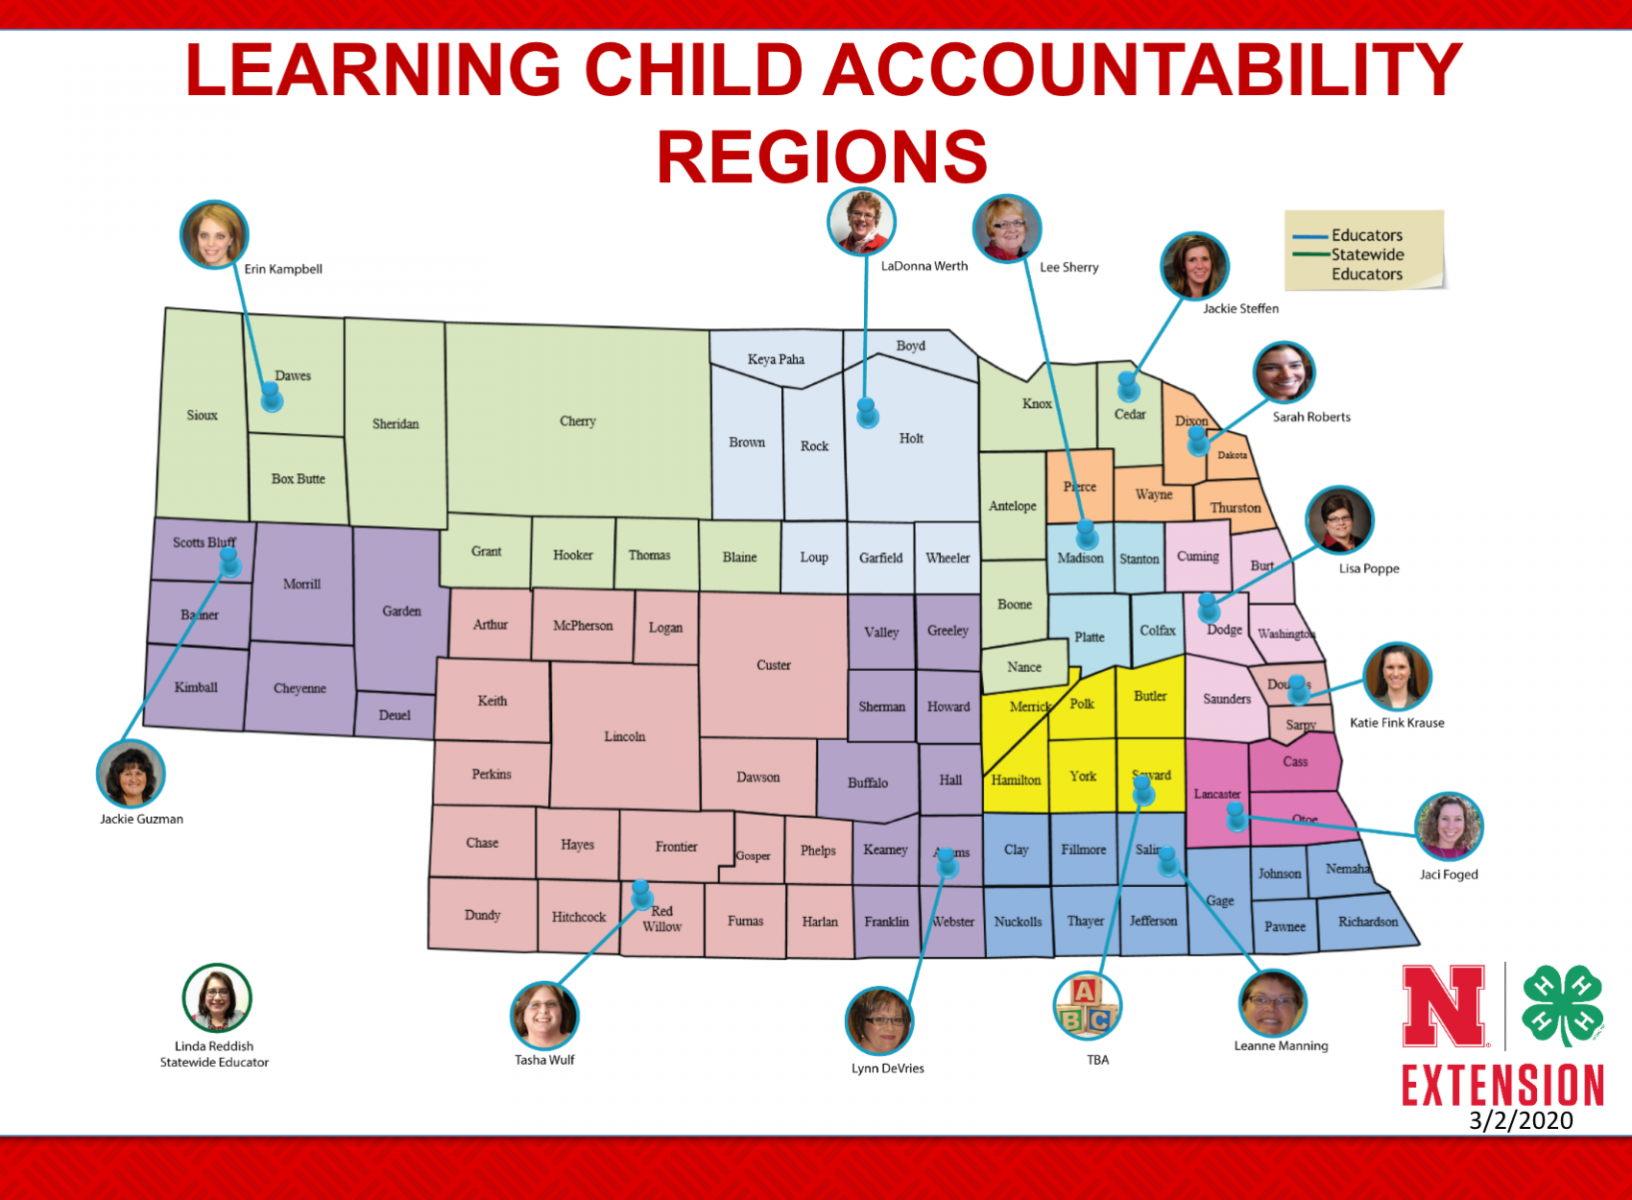 Learning Child Accountability Regions map